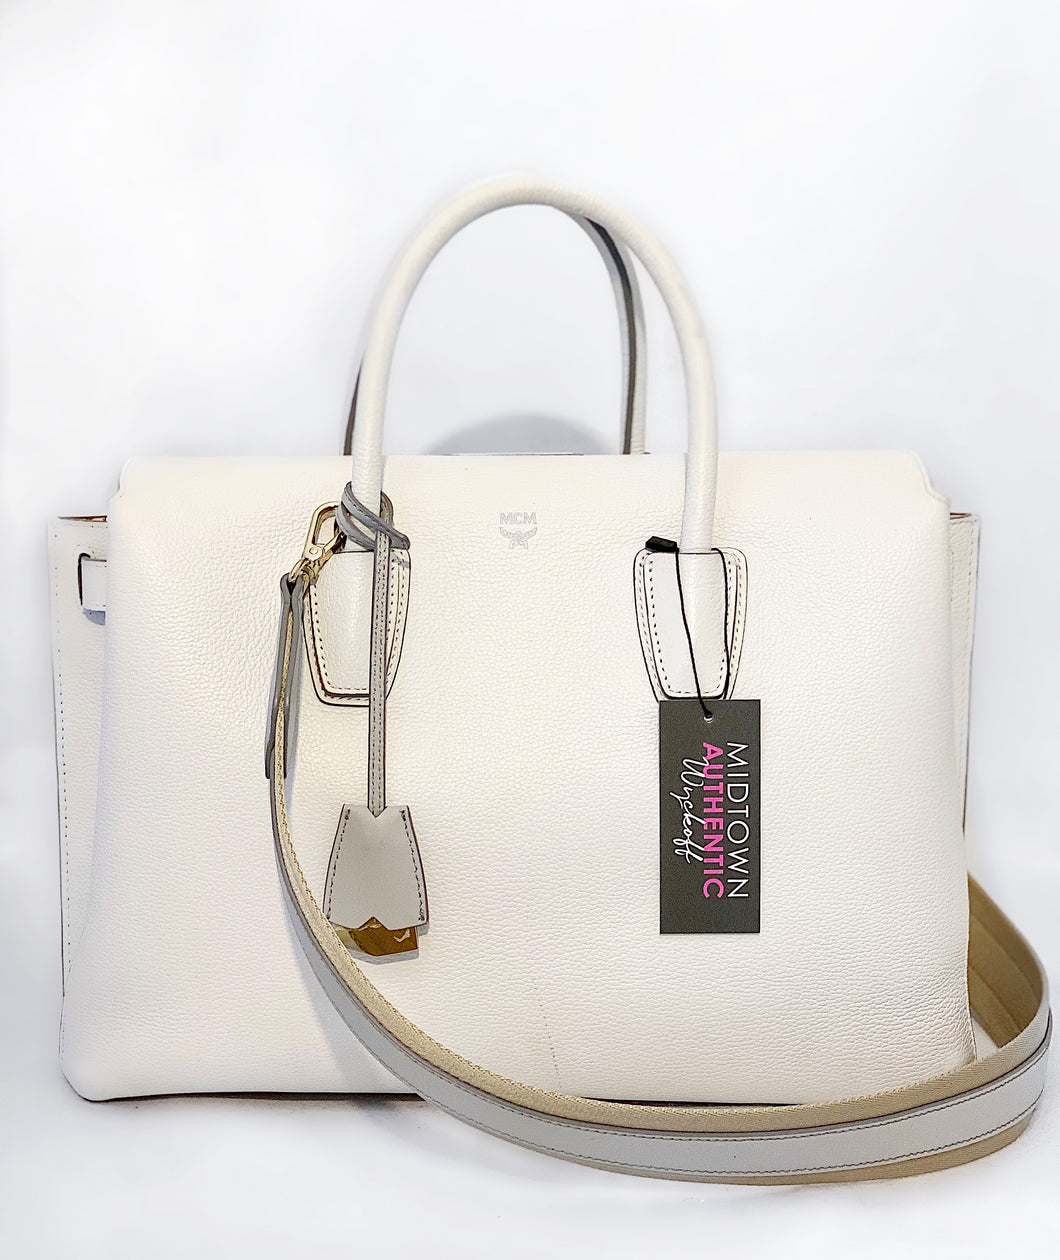 MCM White Leather Tote